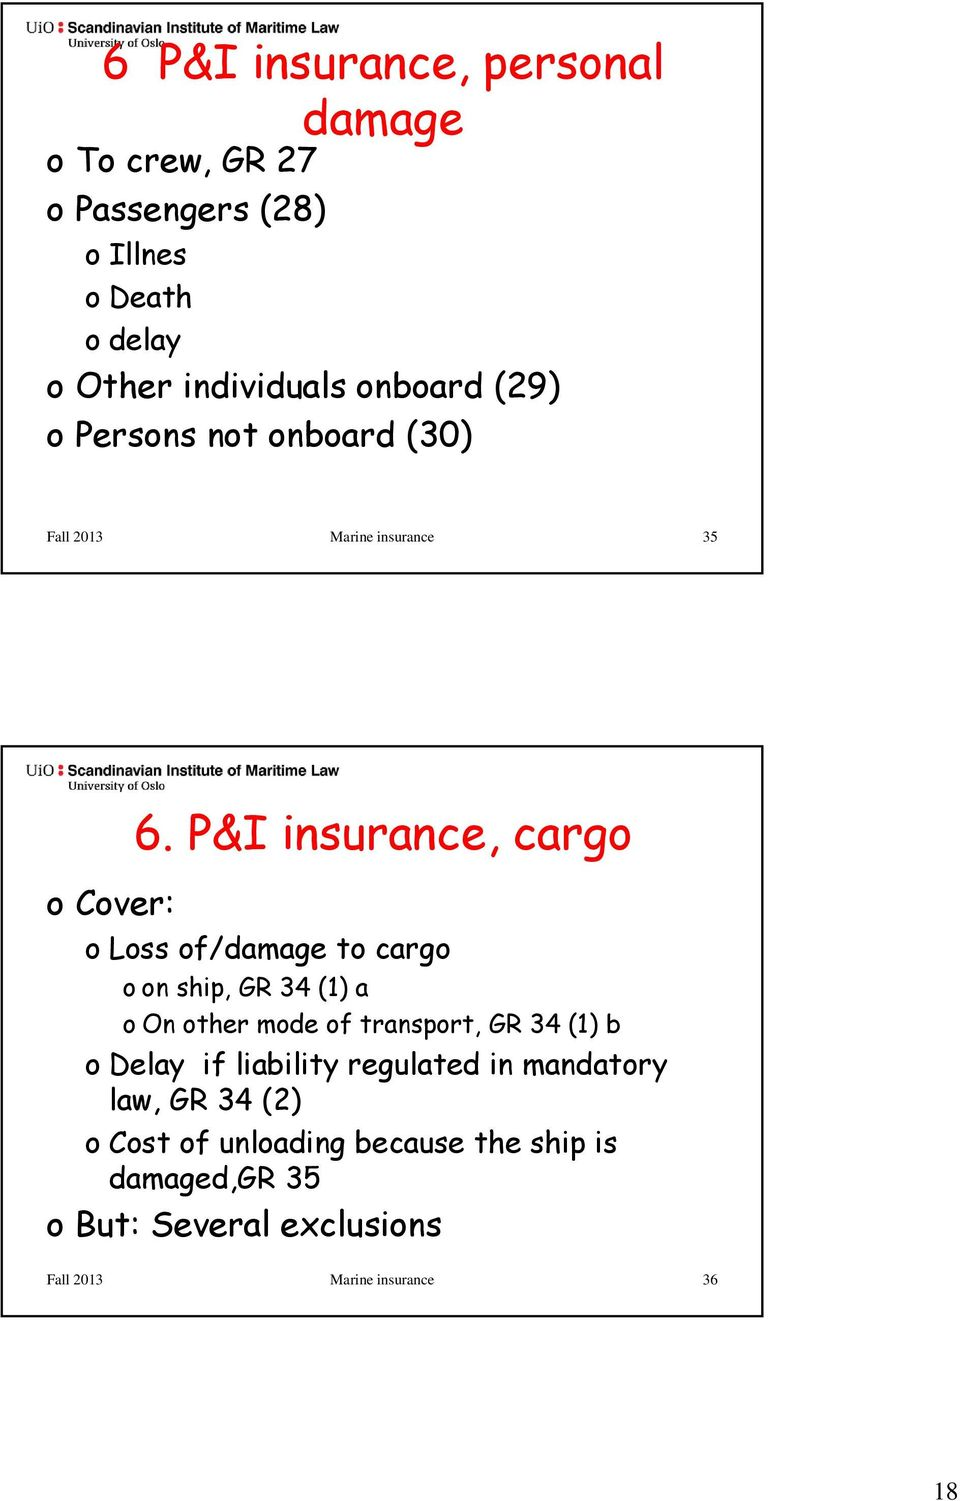 P&I insurance, cargo o Loss of/damage to cargo o on ship, GR 34 (1) a o On other mode of transport, GR 34 (1) b o